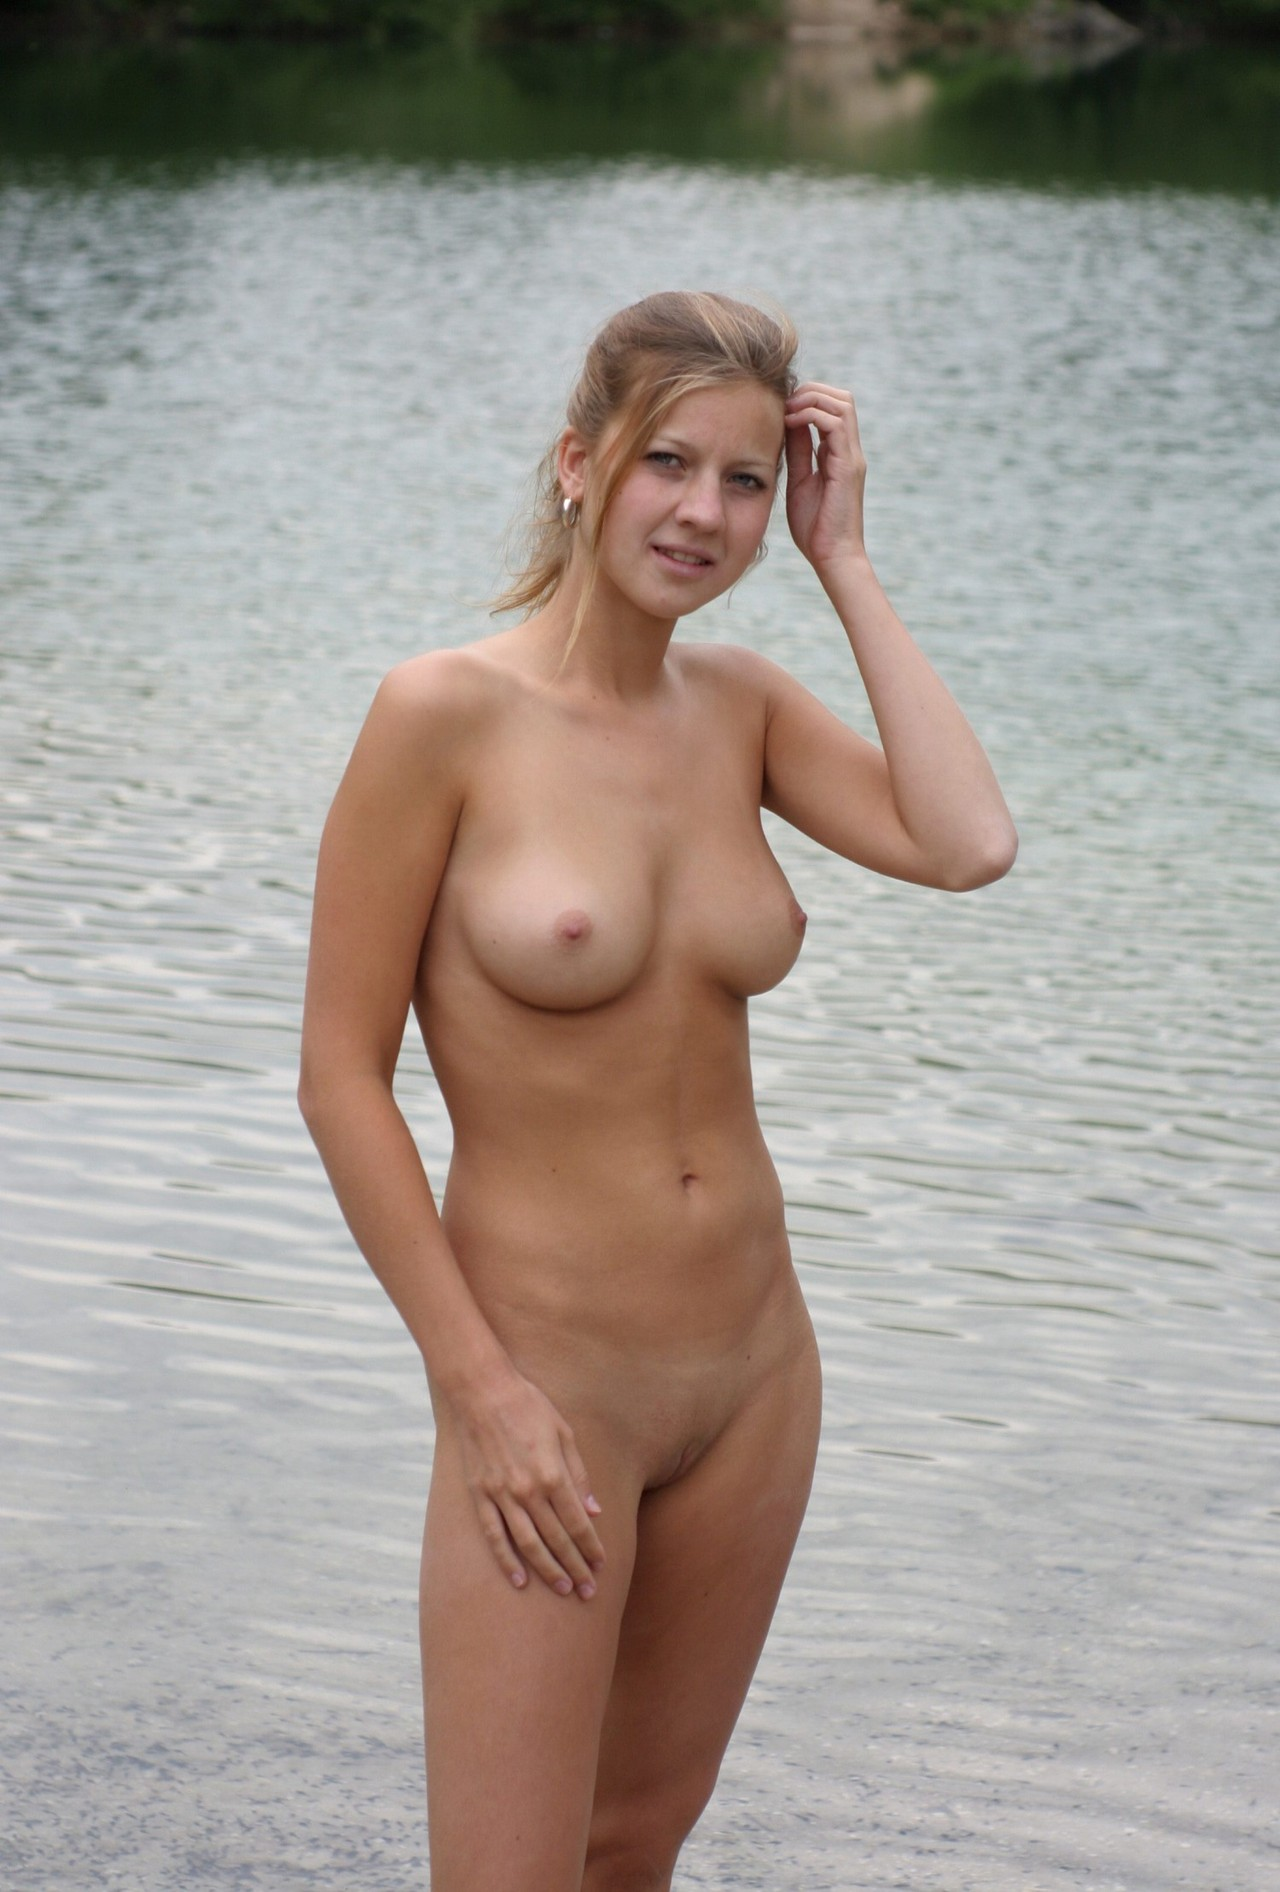 Naked adult women photos